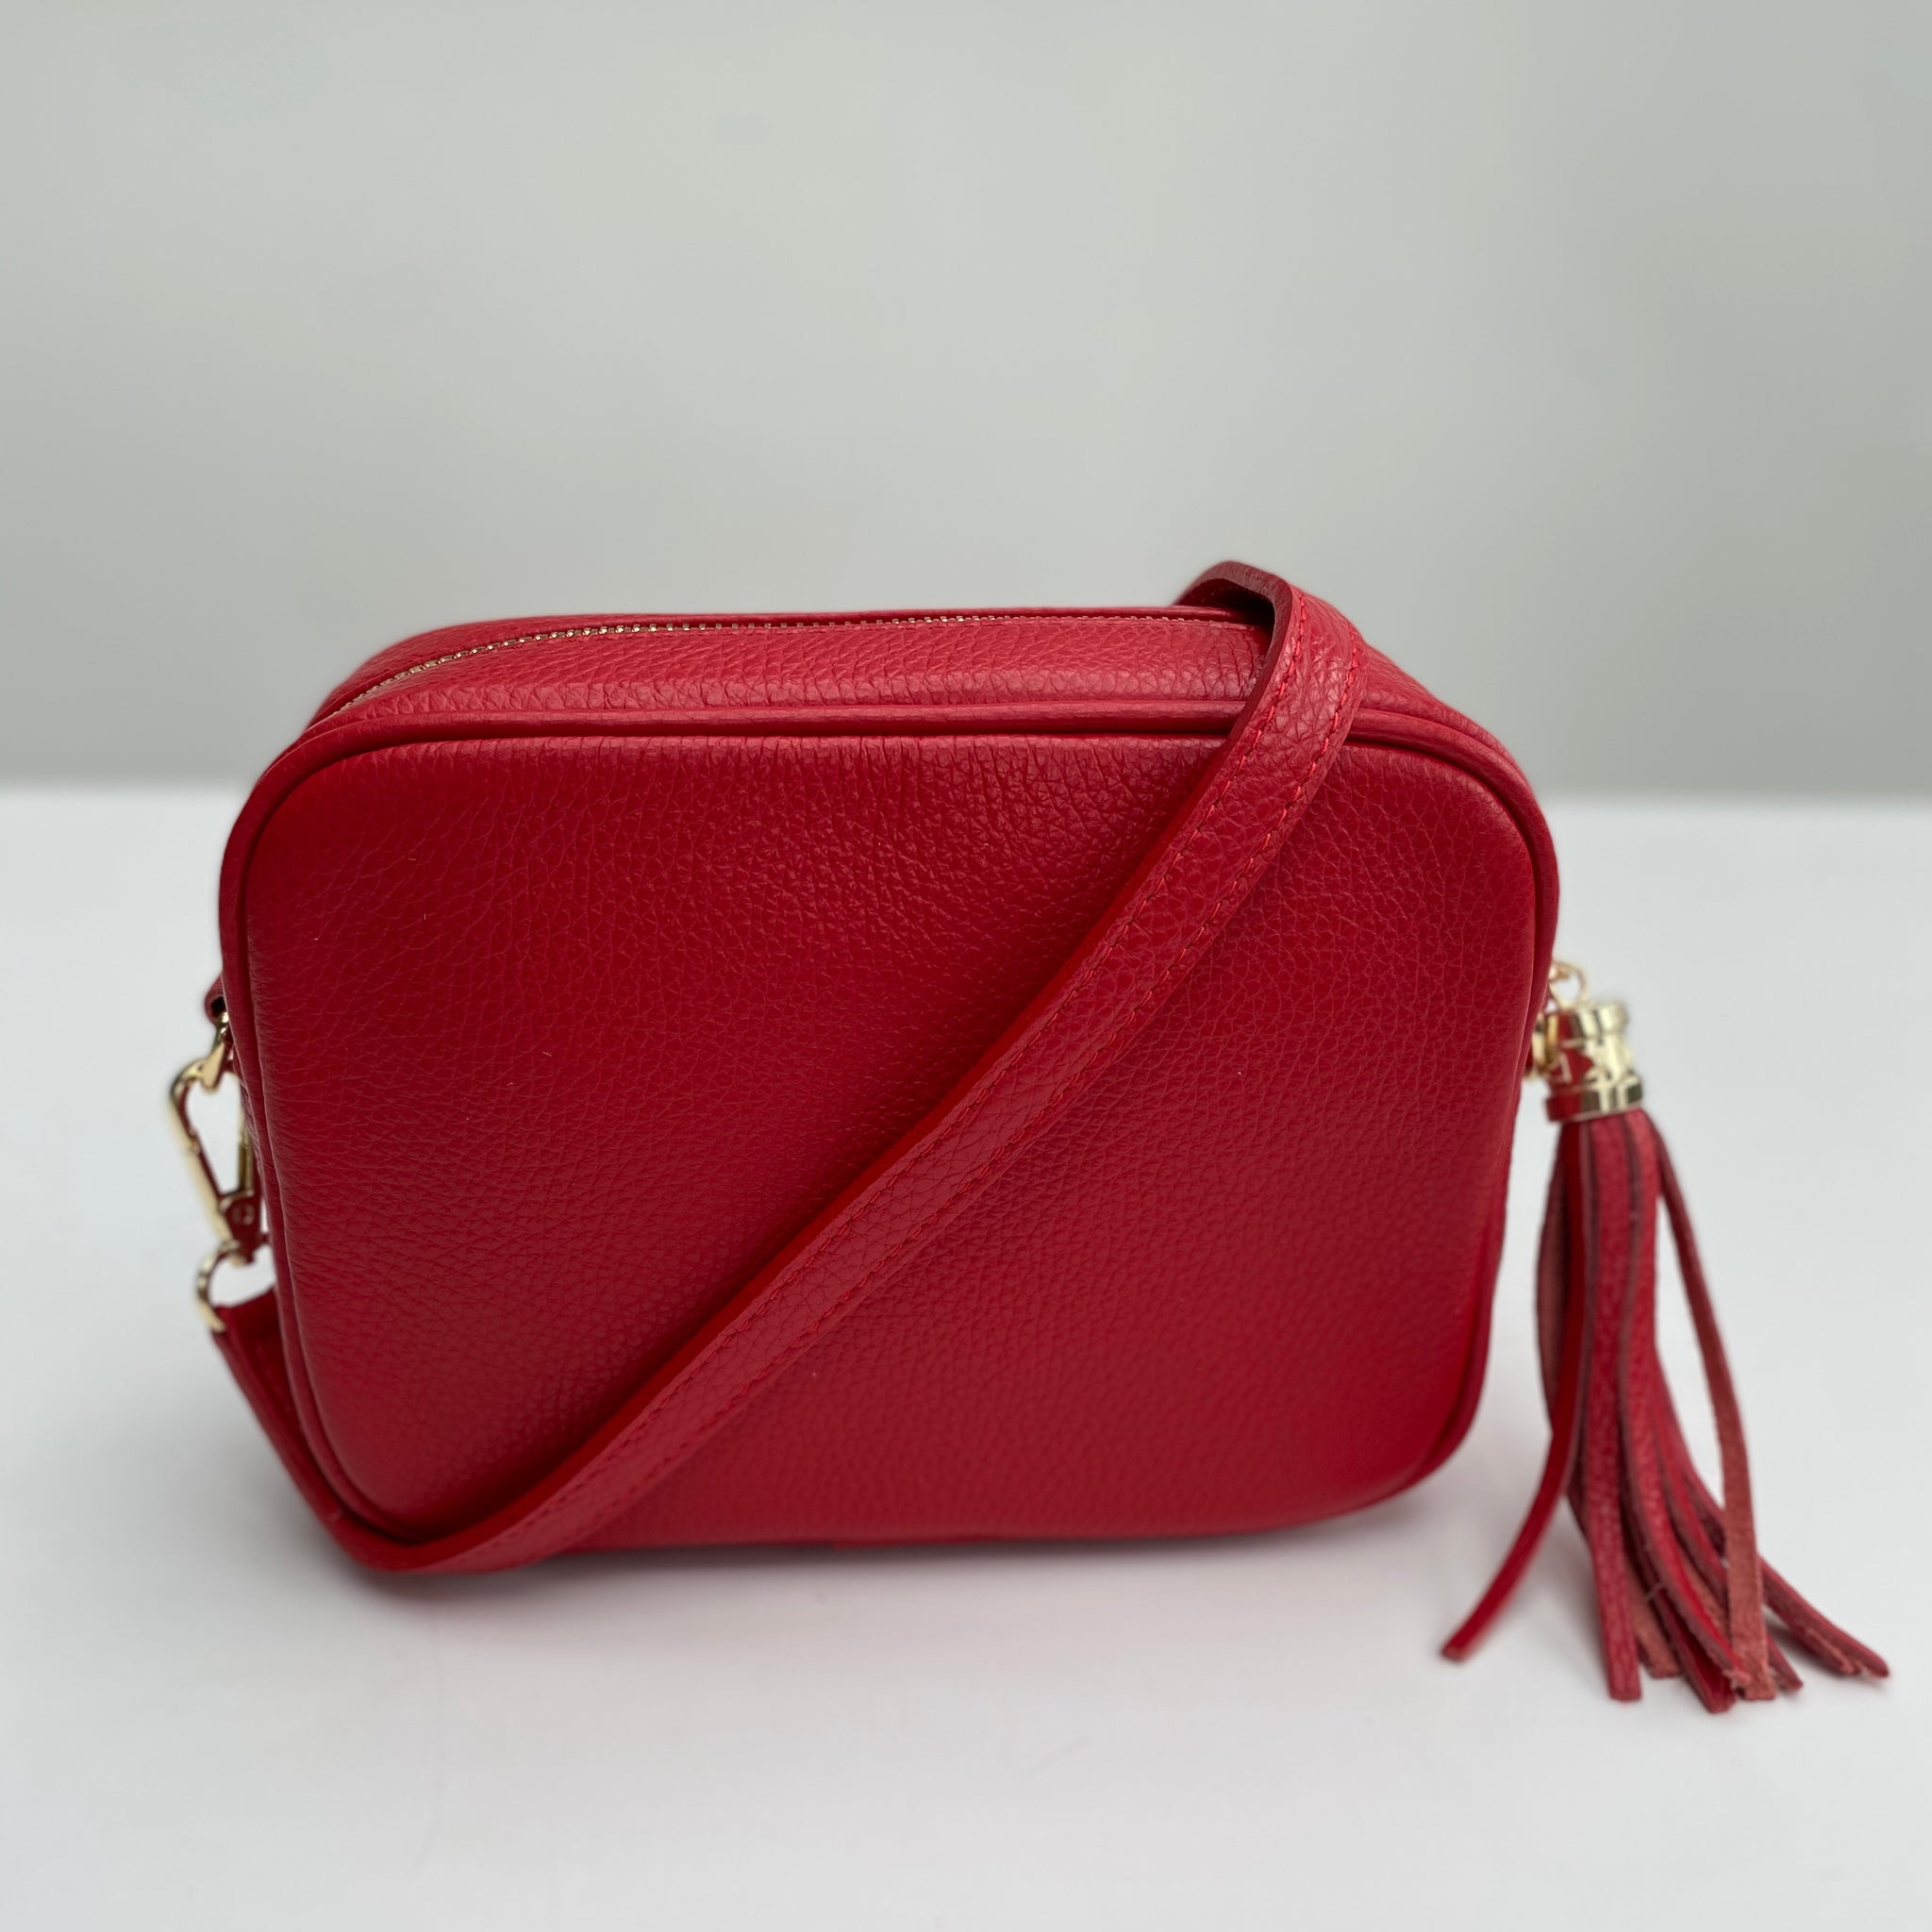 Red Leather Tassel Cross Body Bag